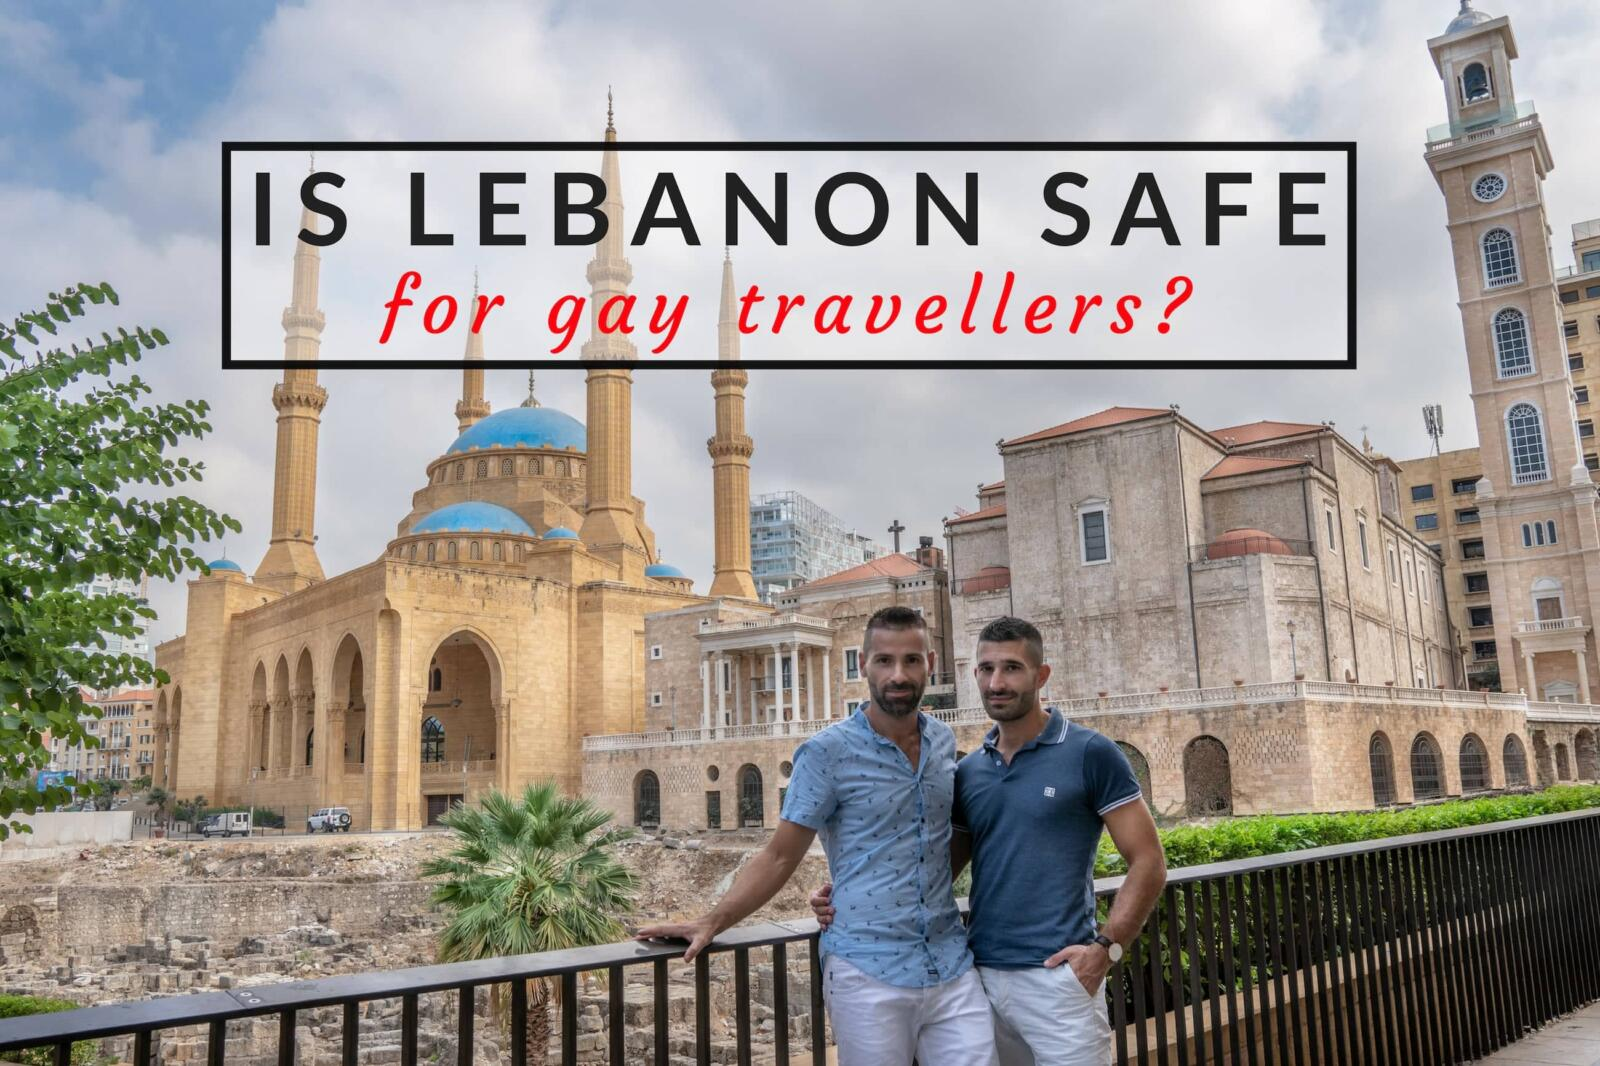 Gay travel to Lebanon, is it safe for gay travellers?